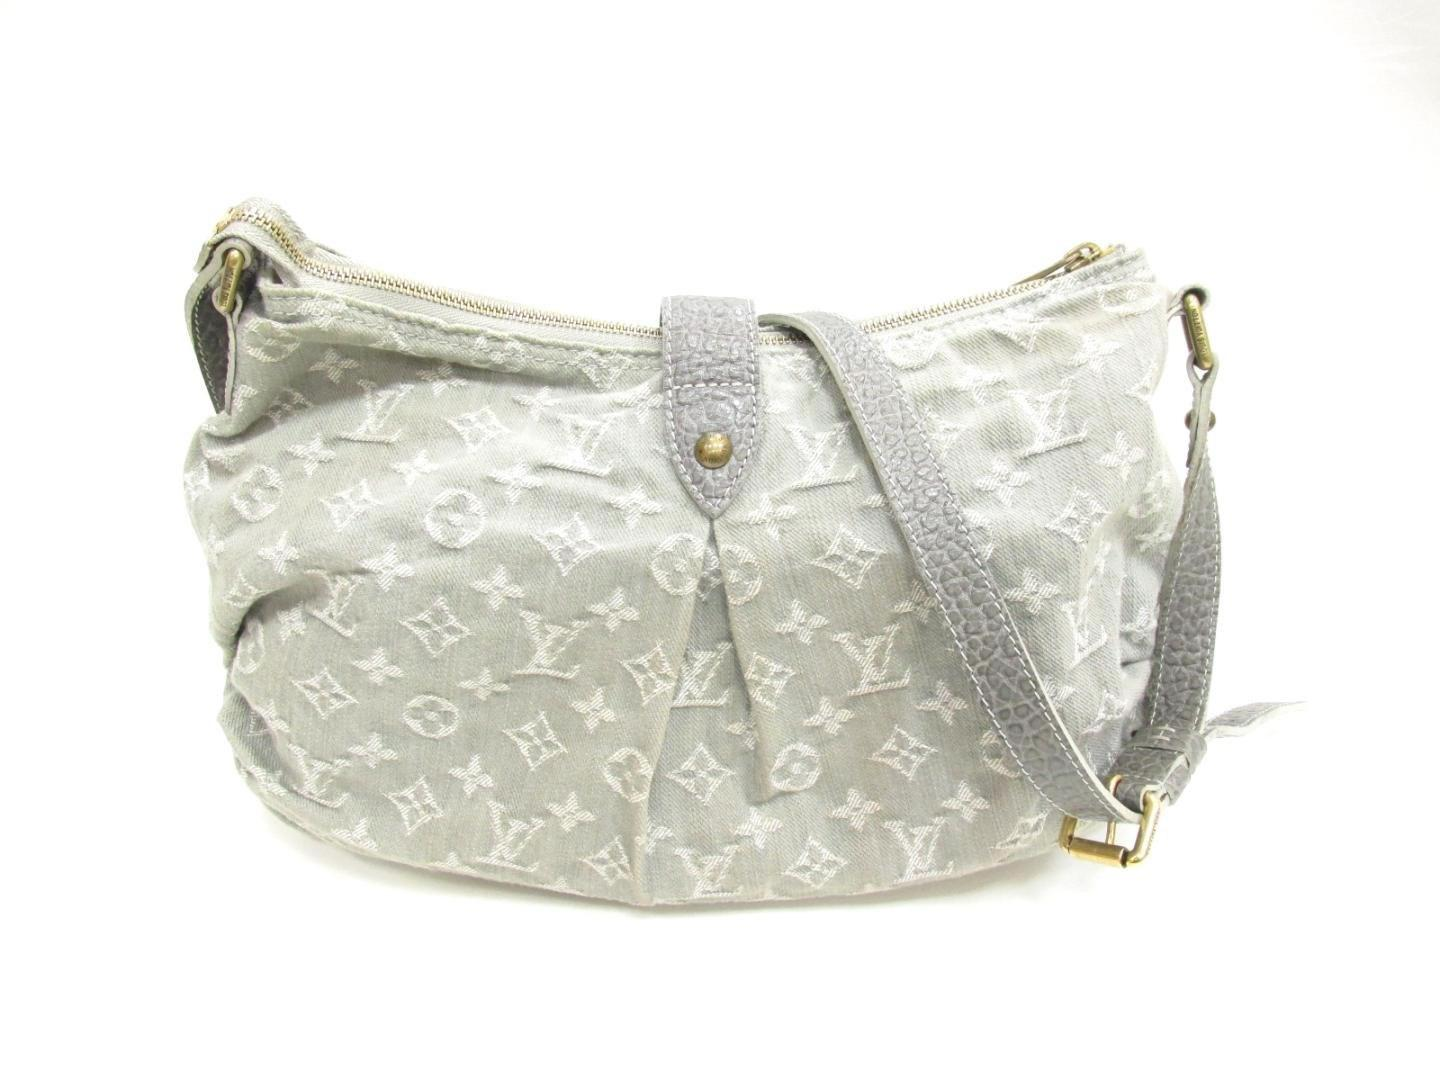 912c181bd8cb Lyst - Louis Vuitton Slightly Shoulder Bag Monogram Denim Grey ...